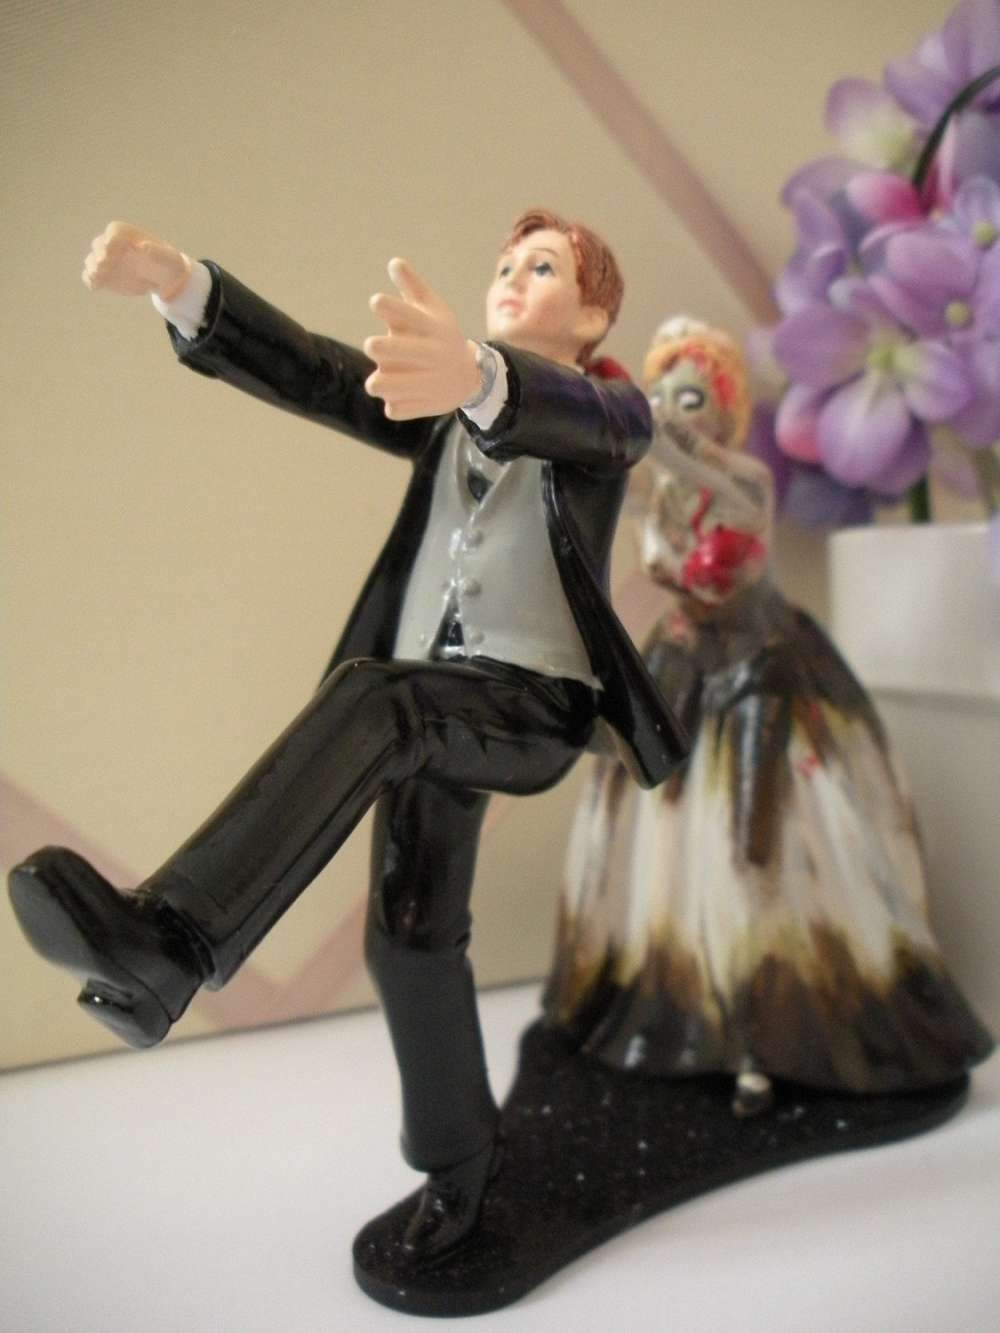 Zombie Wedding Cake Topper   DudeIWantThat com Zombie Wedding Cake Topper